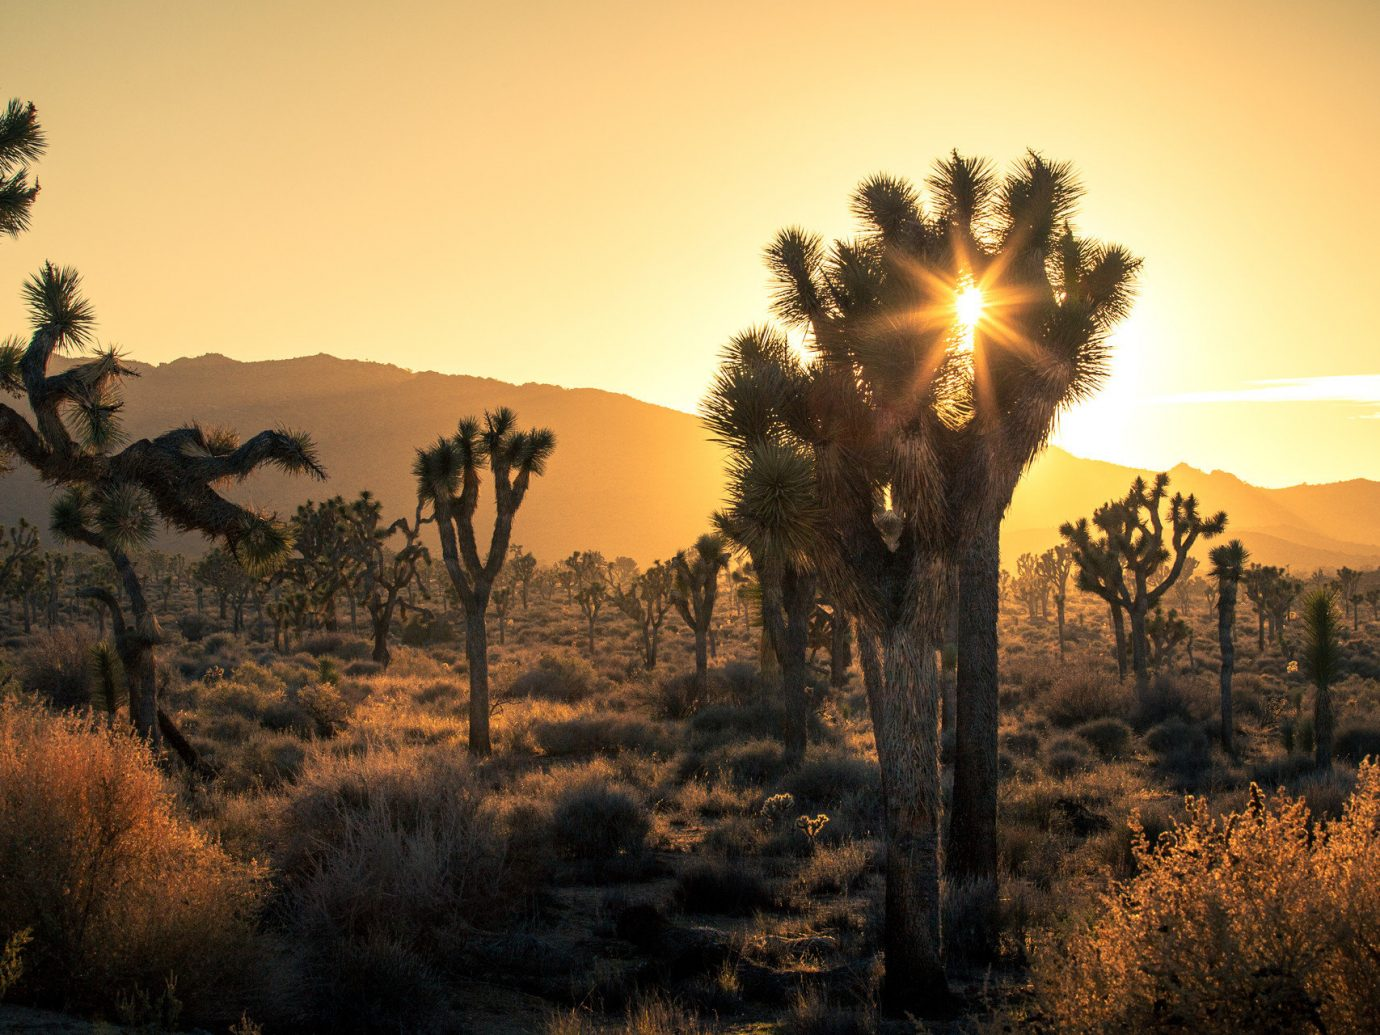 City Influencers + Tastemakers Joshua Tree Road Trips Travel Tips Trip Ideas outdoor sky tree grass plant Sunset Nature Sun atmospheric phenomenon sunrise wilderness natural environment horizon morning dawn evening setting savanna sunlight season dusk field landscape woody plant autumn flower arecales Desert